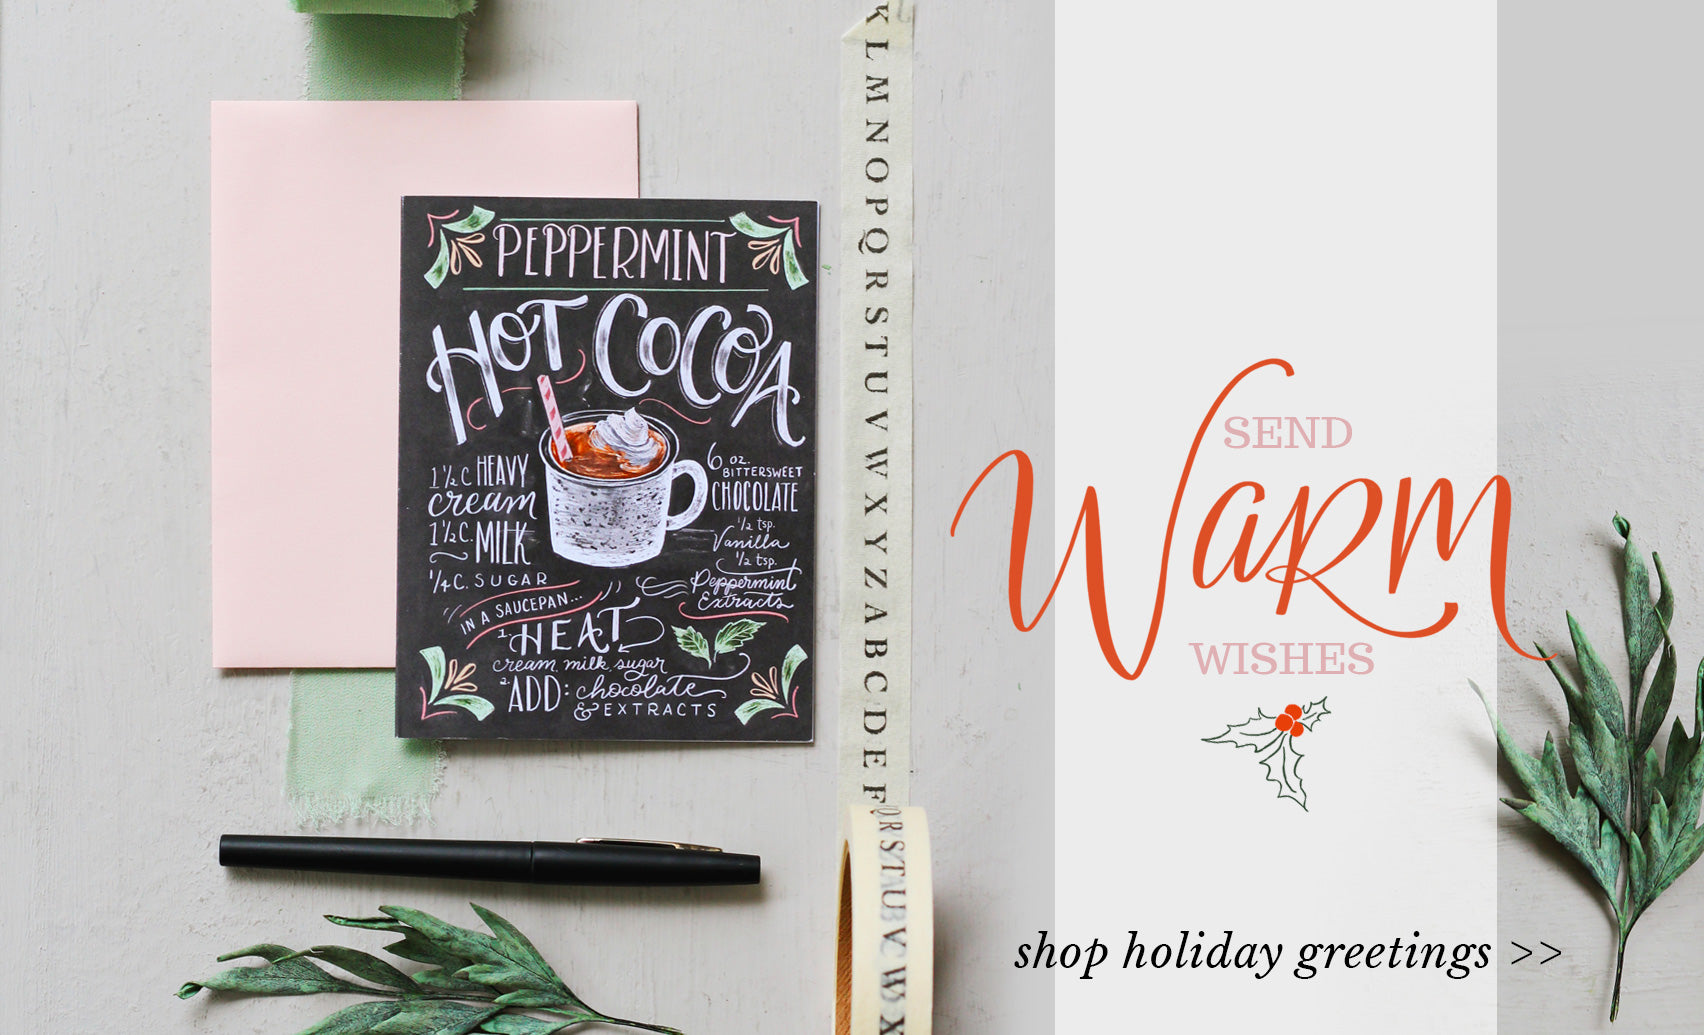 Send Warm Wishes - Shop Holiday Greeting Cards >>